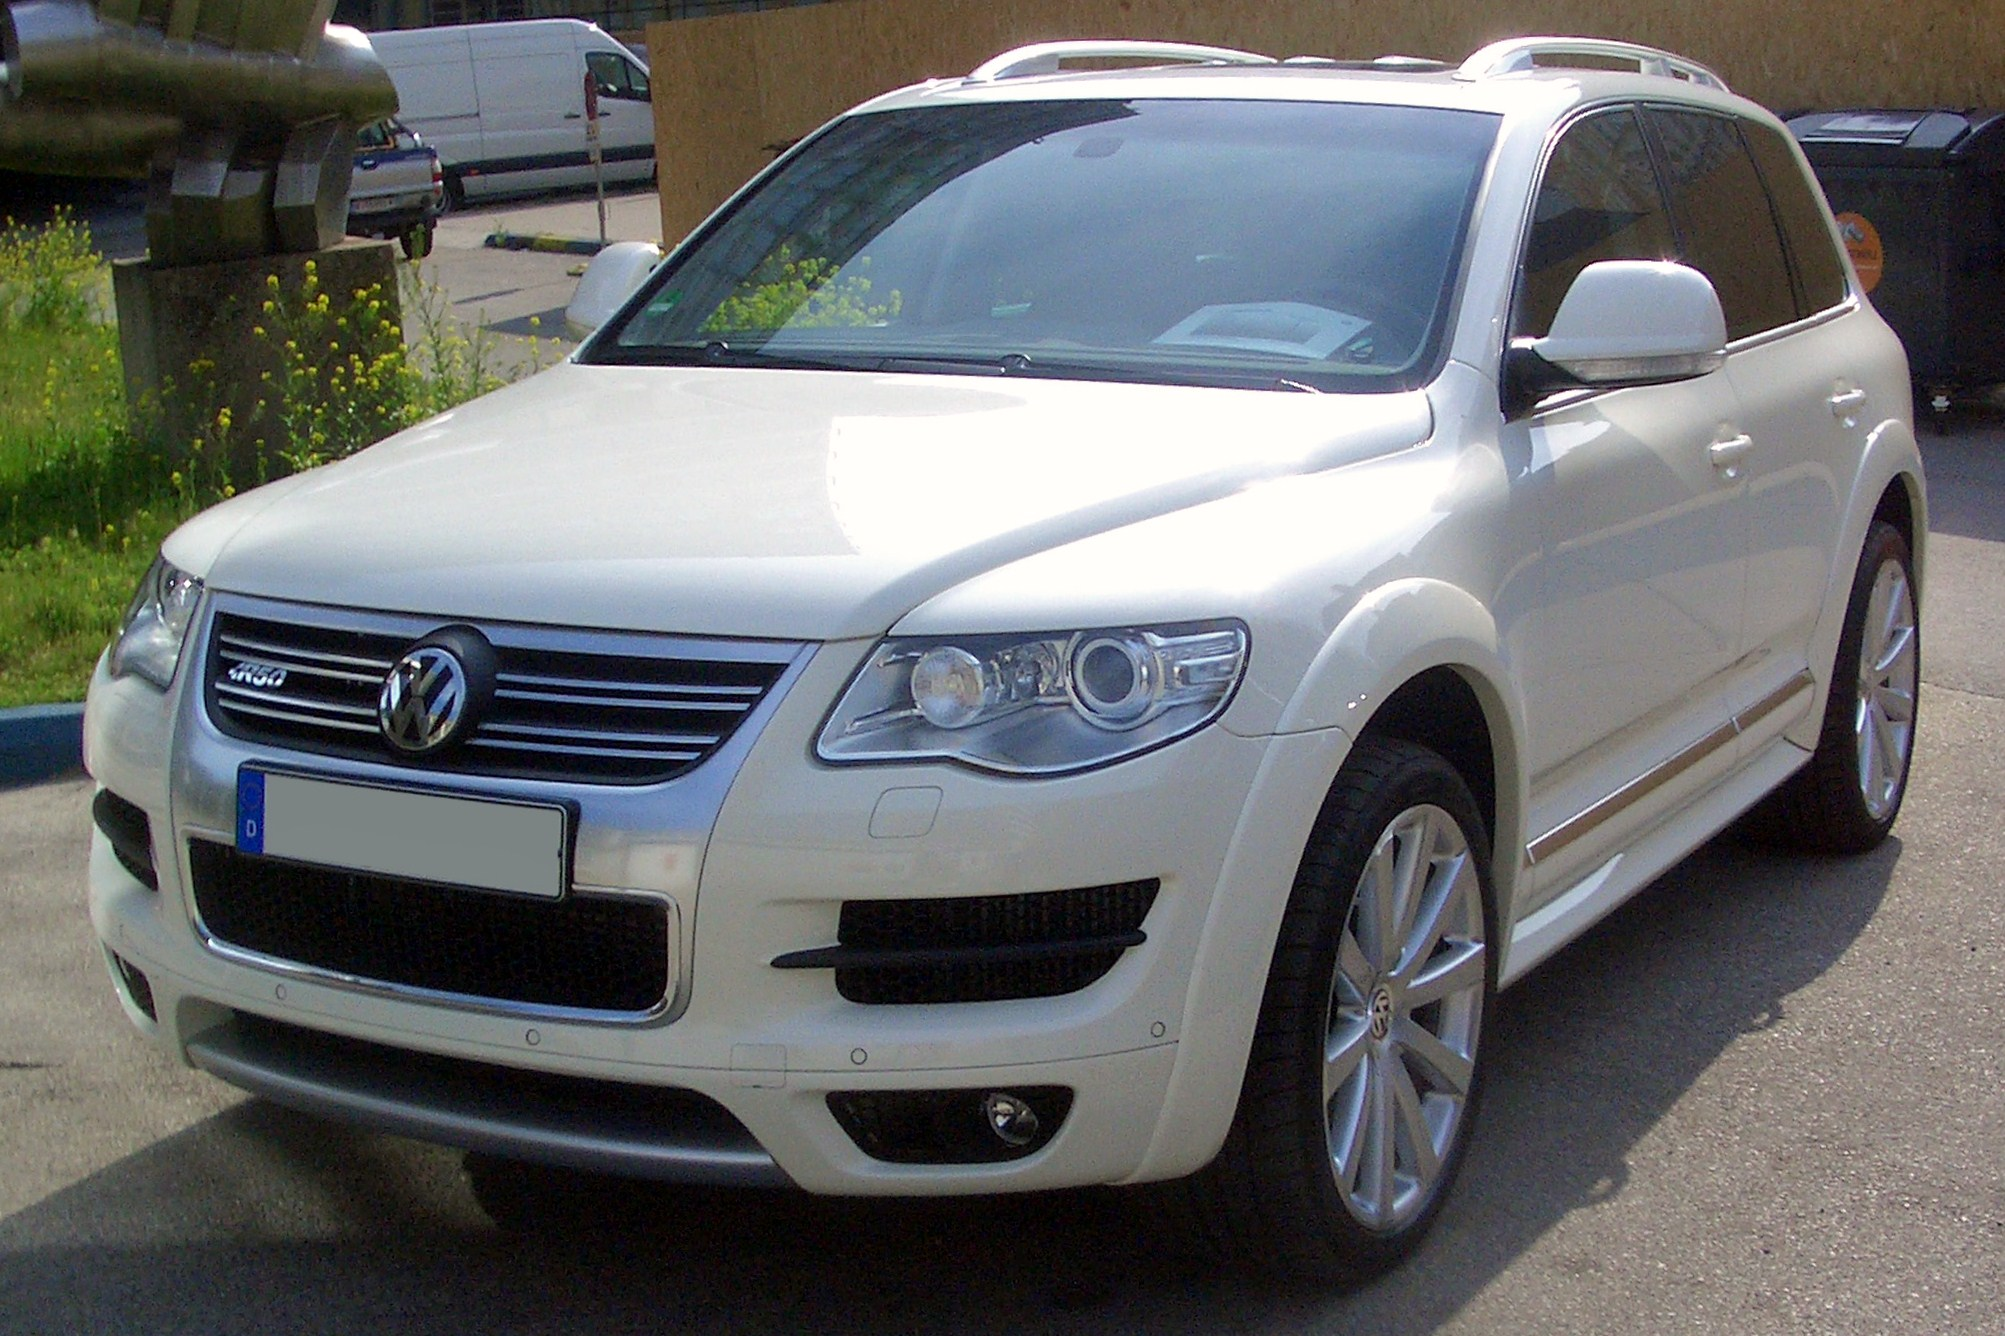 Volkswagen Touareg | Wiki & Review | Everipedia